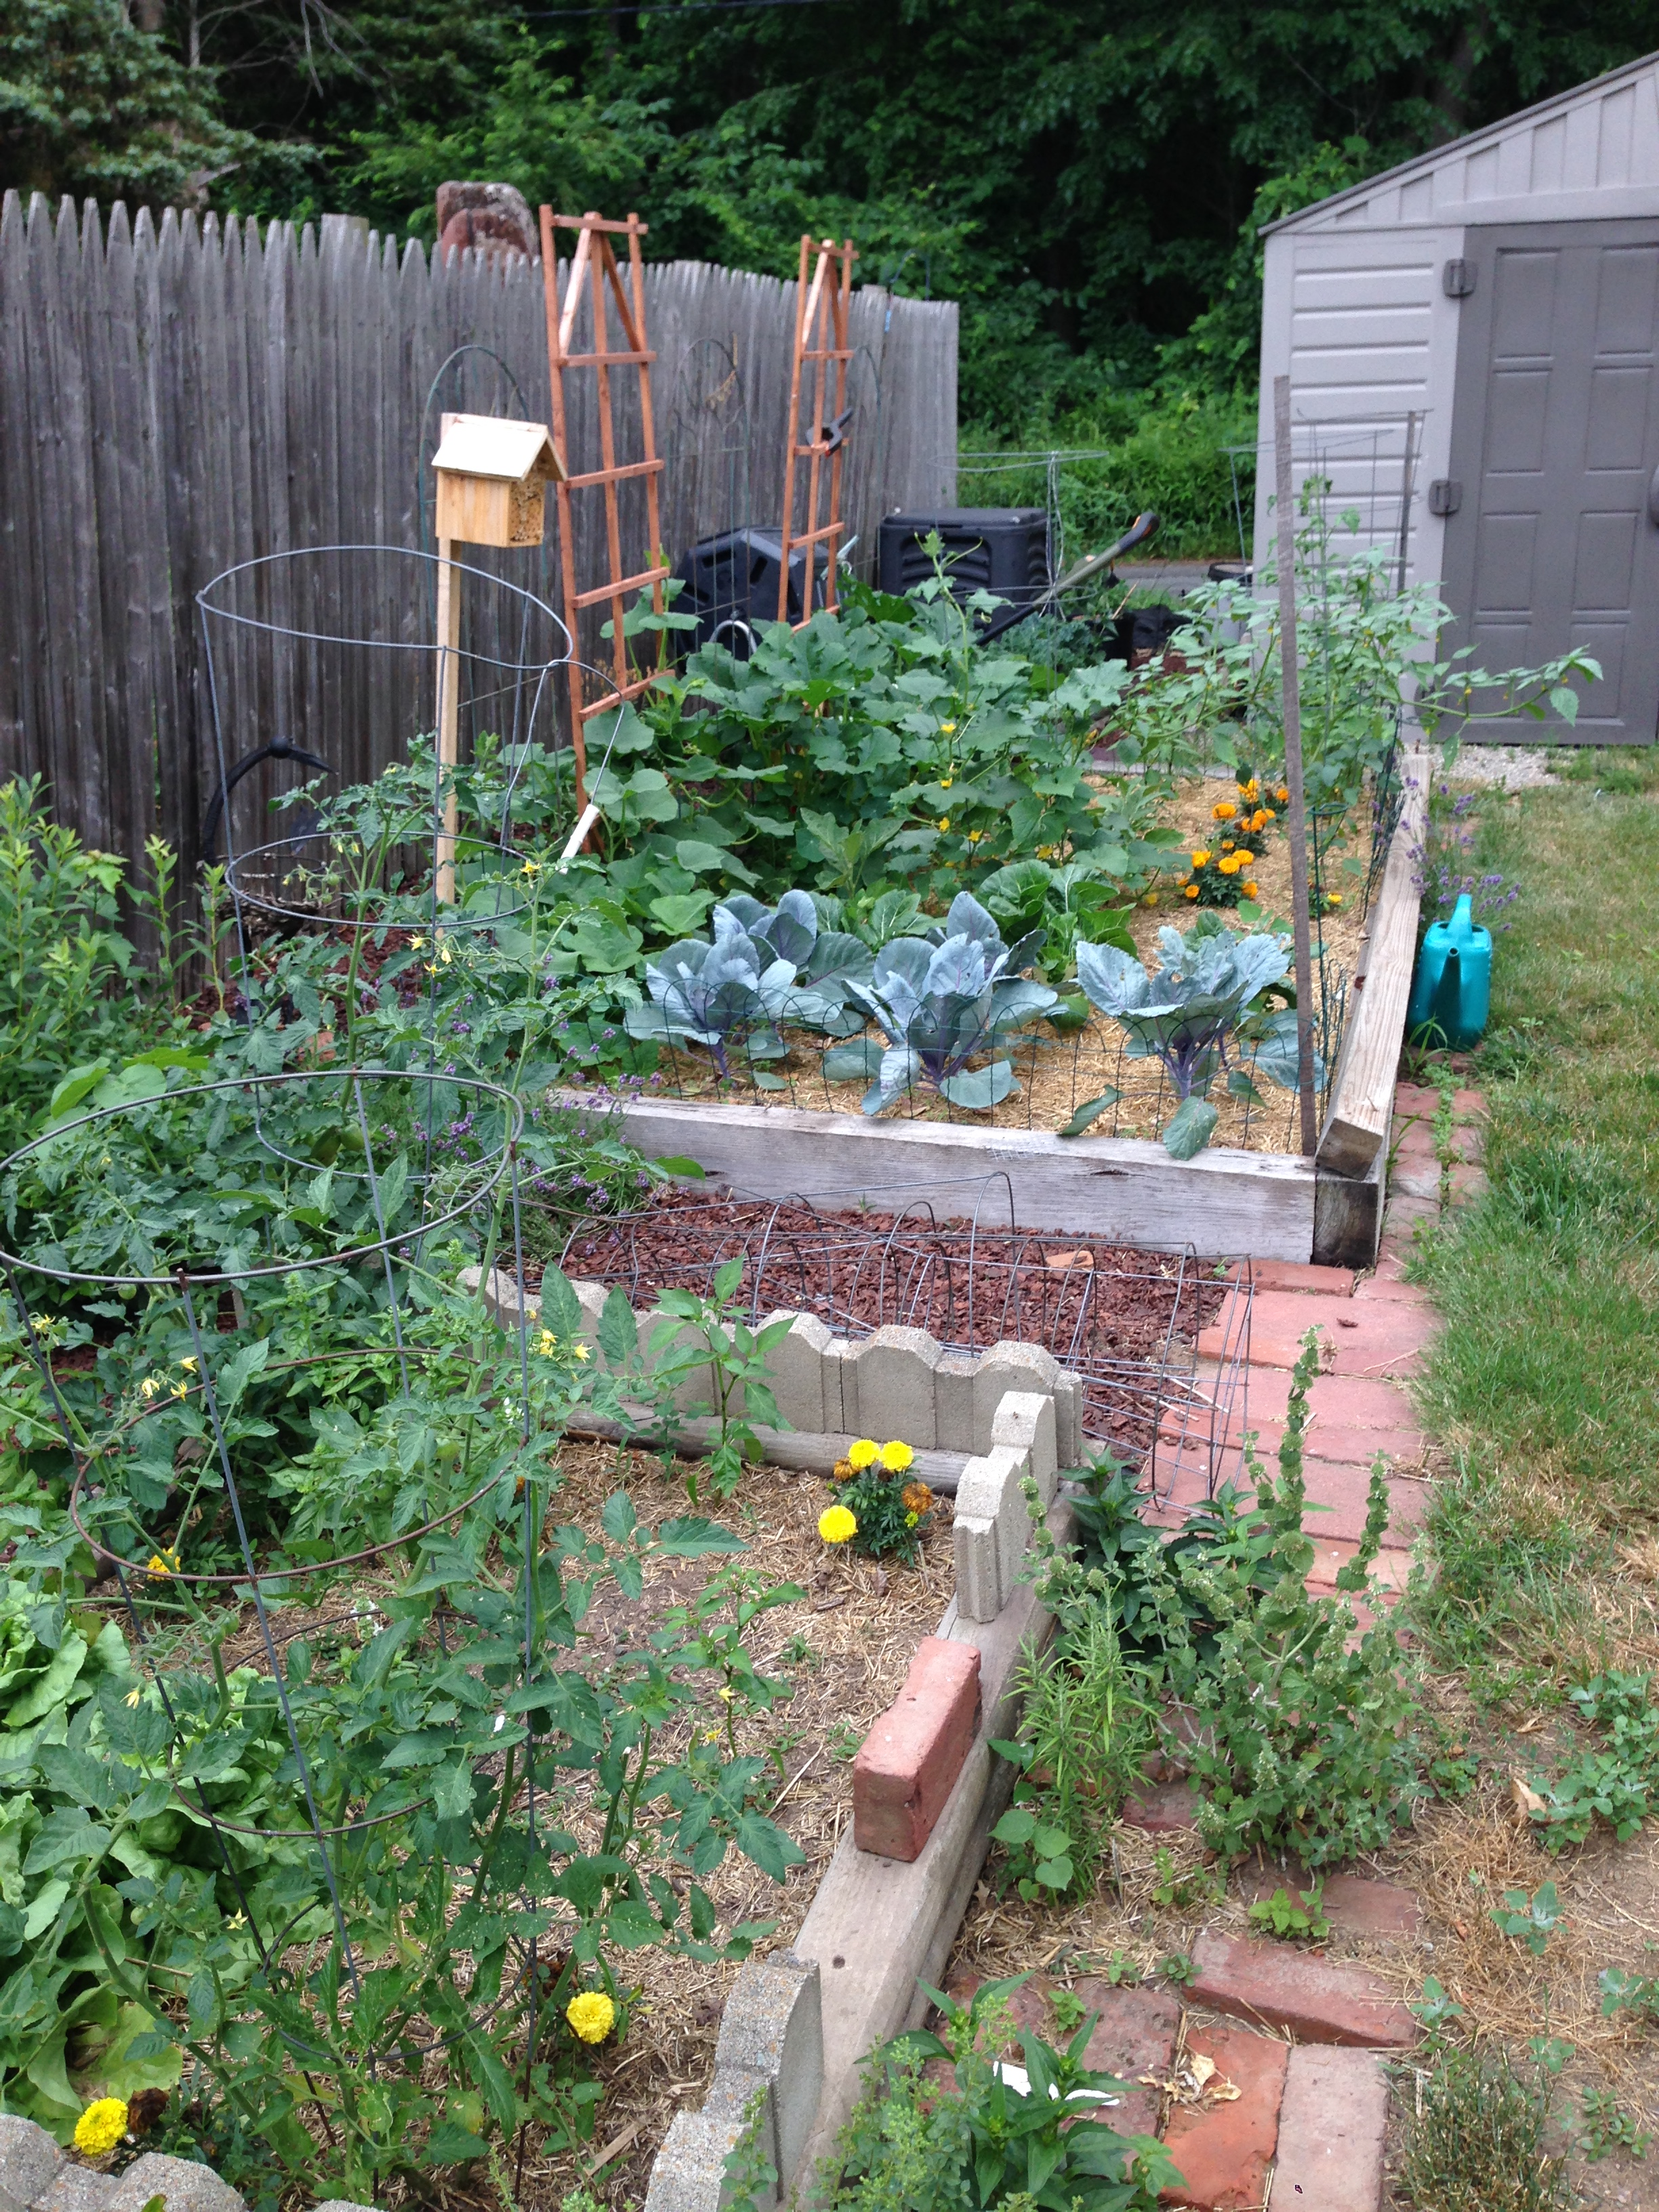 Two raised garndes beds with vegetables and herbs, and a compost pile.